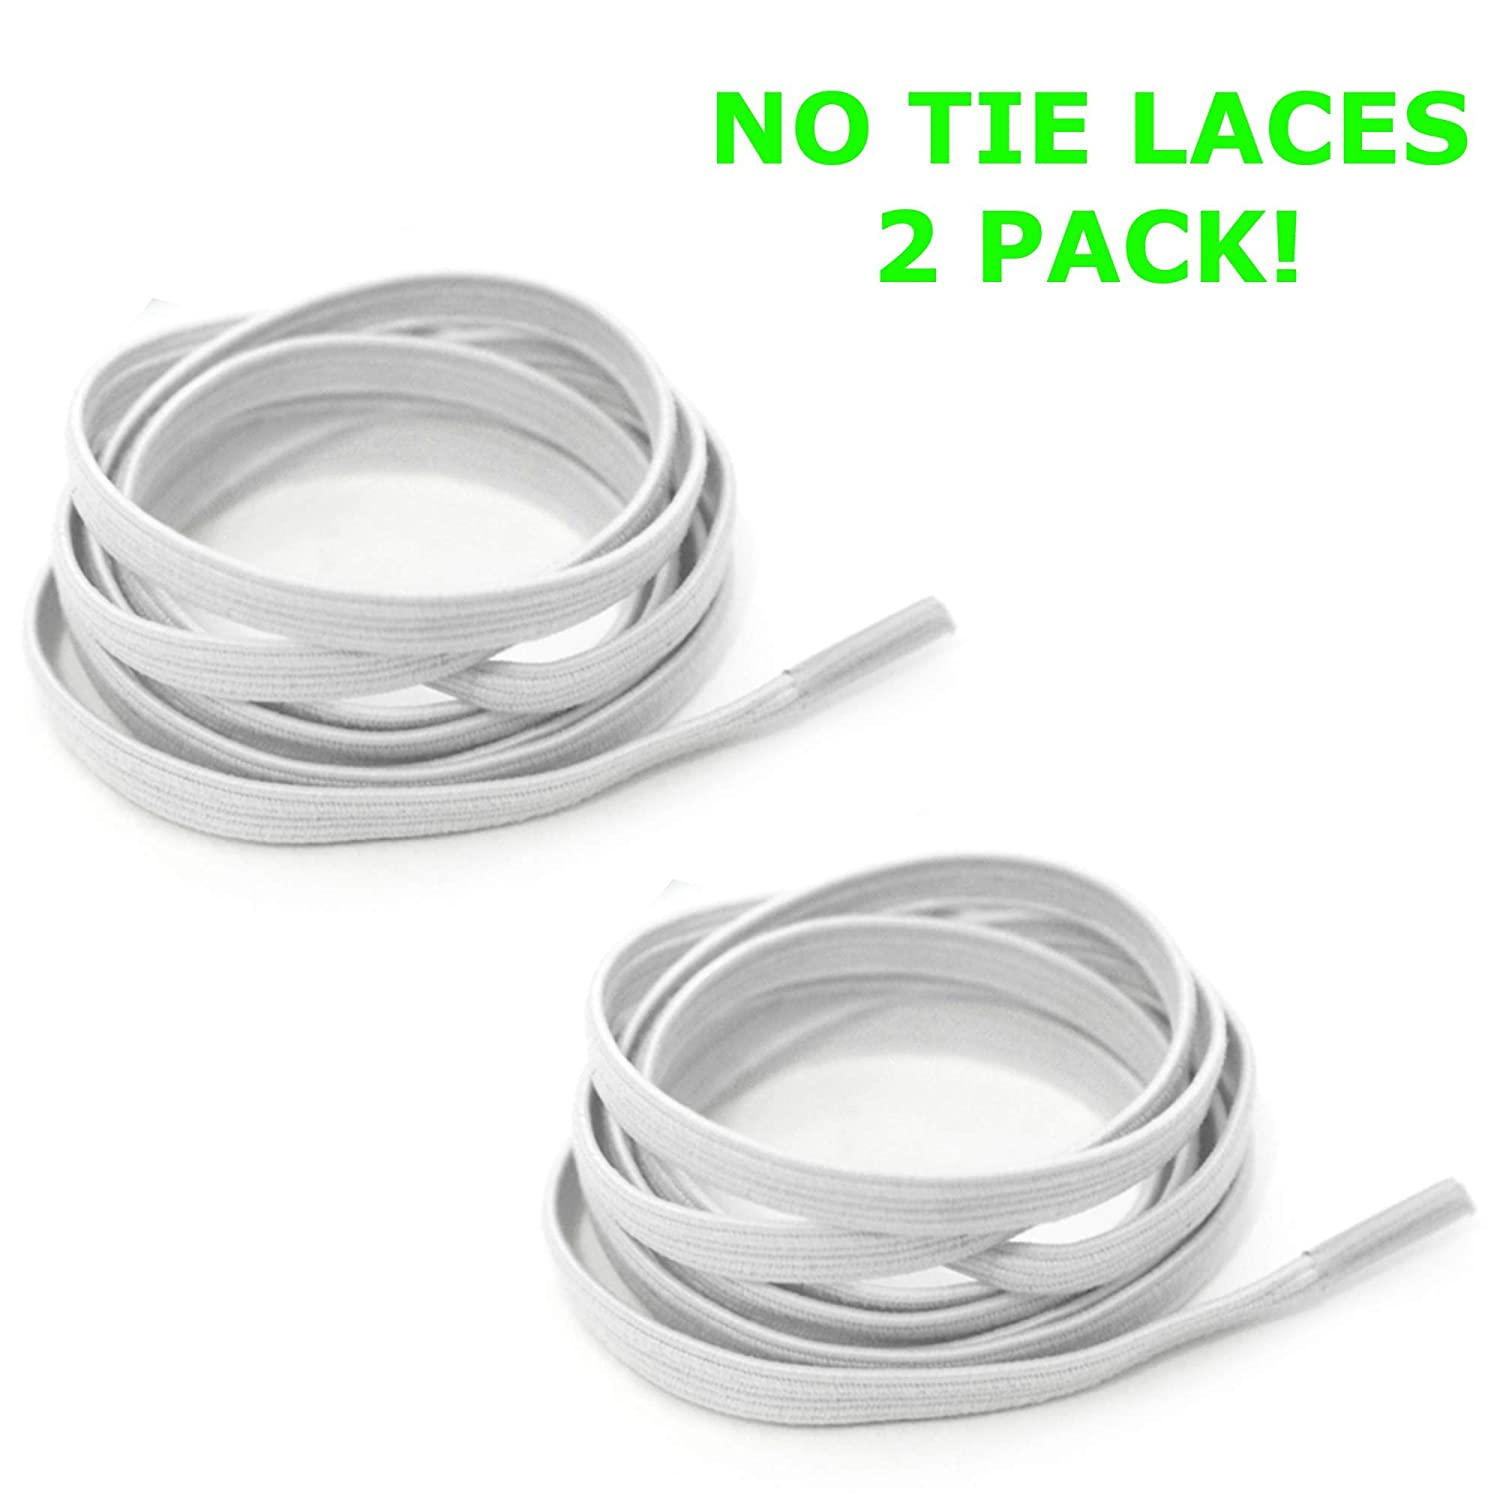 Tieless Elastic Shoelaces 2 Pack | Easy to Install | Great for Kids or Adults | 4 colors | No Tie Silicon shoelaces for Boots Shoes or Trainers | Hidden Laces For Style and Comfort